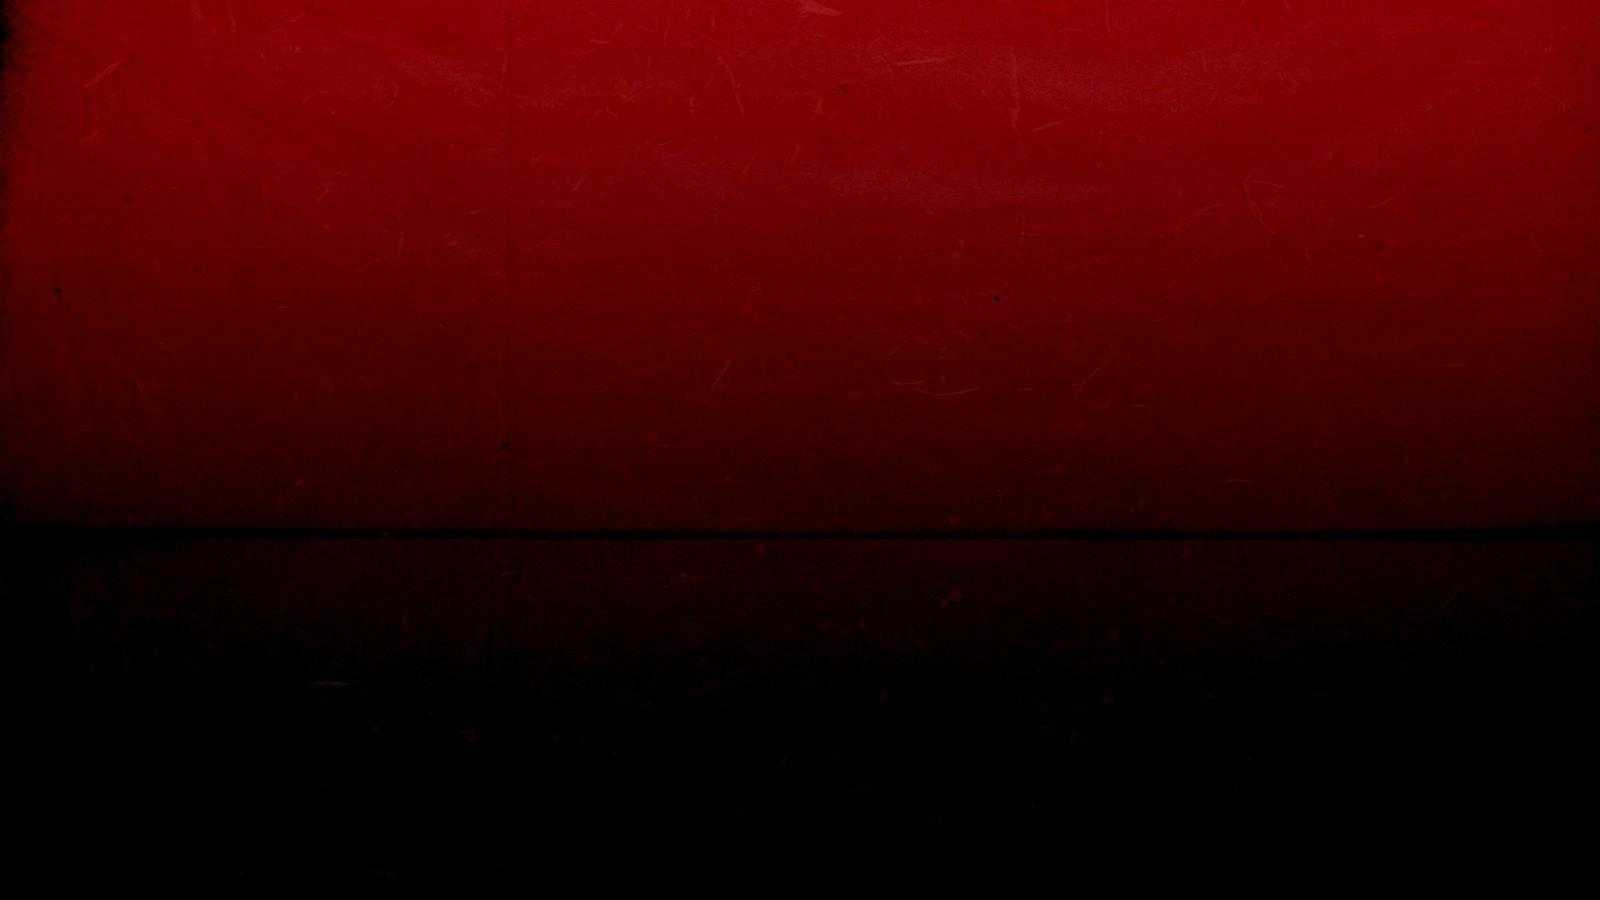 Add These Curated Black And Red Abstract Wallpaper Backgrounds To